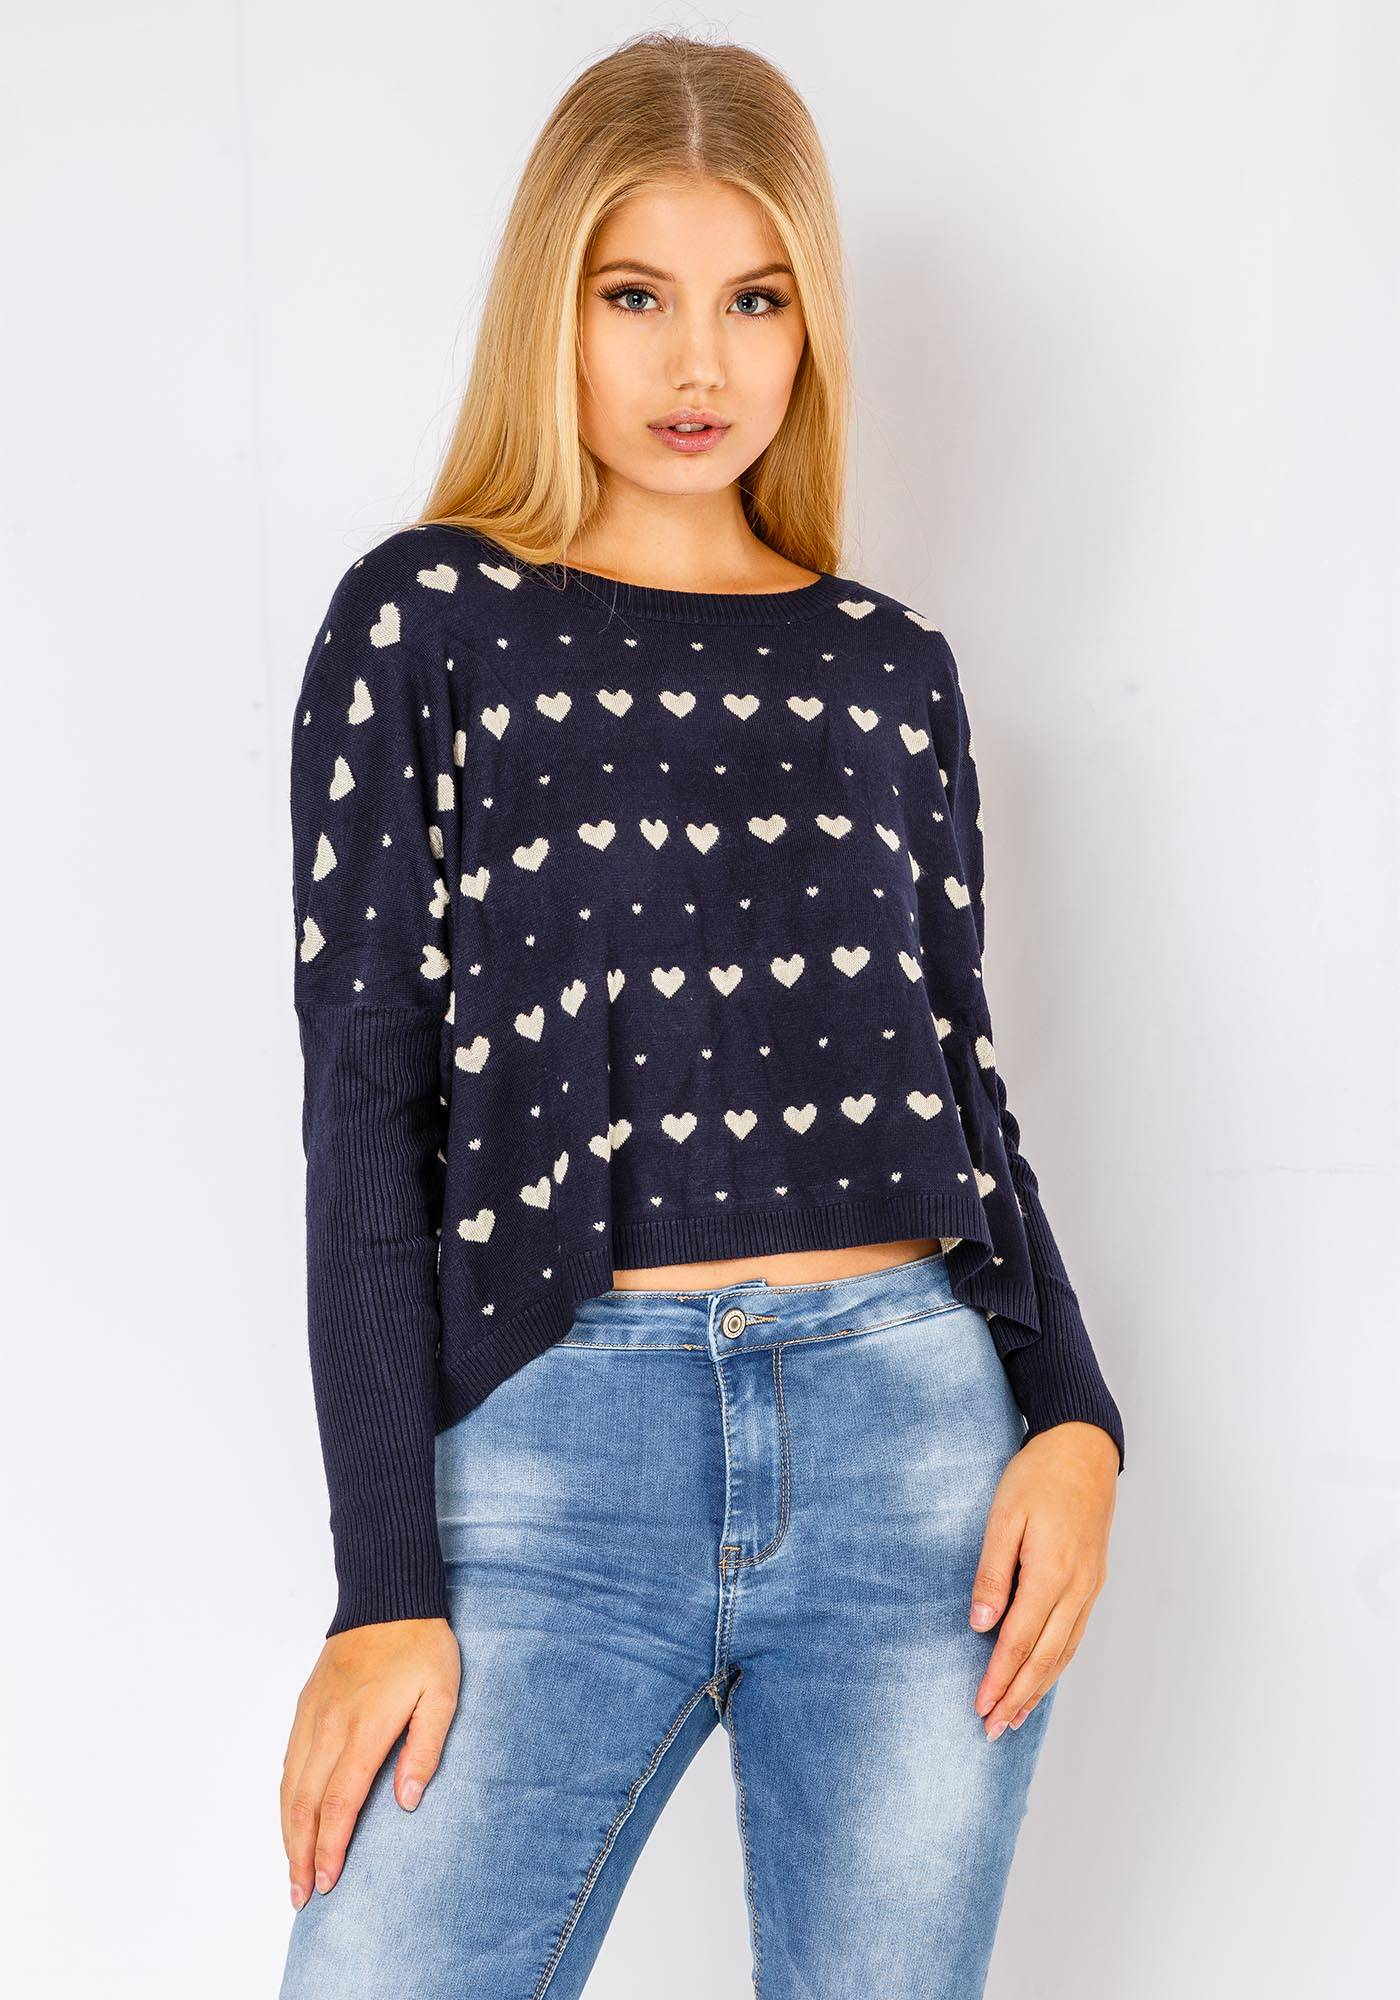 Parta Fortuna Comfy Heart Sweater In Navy